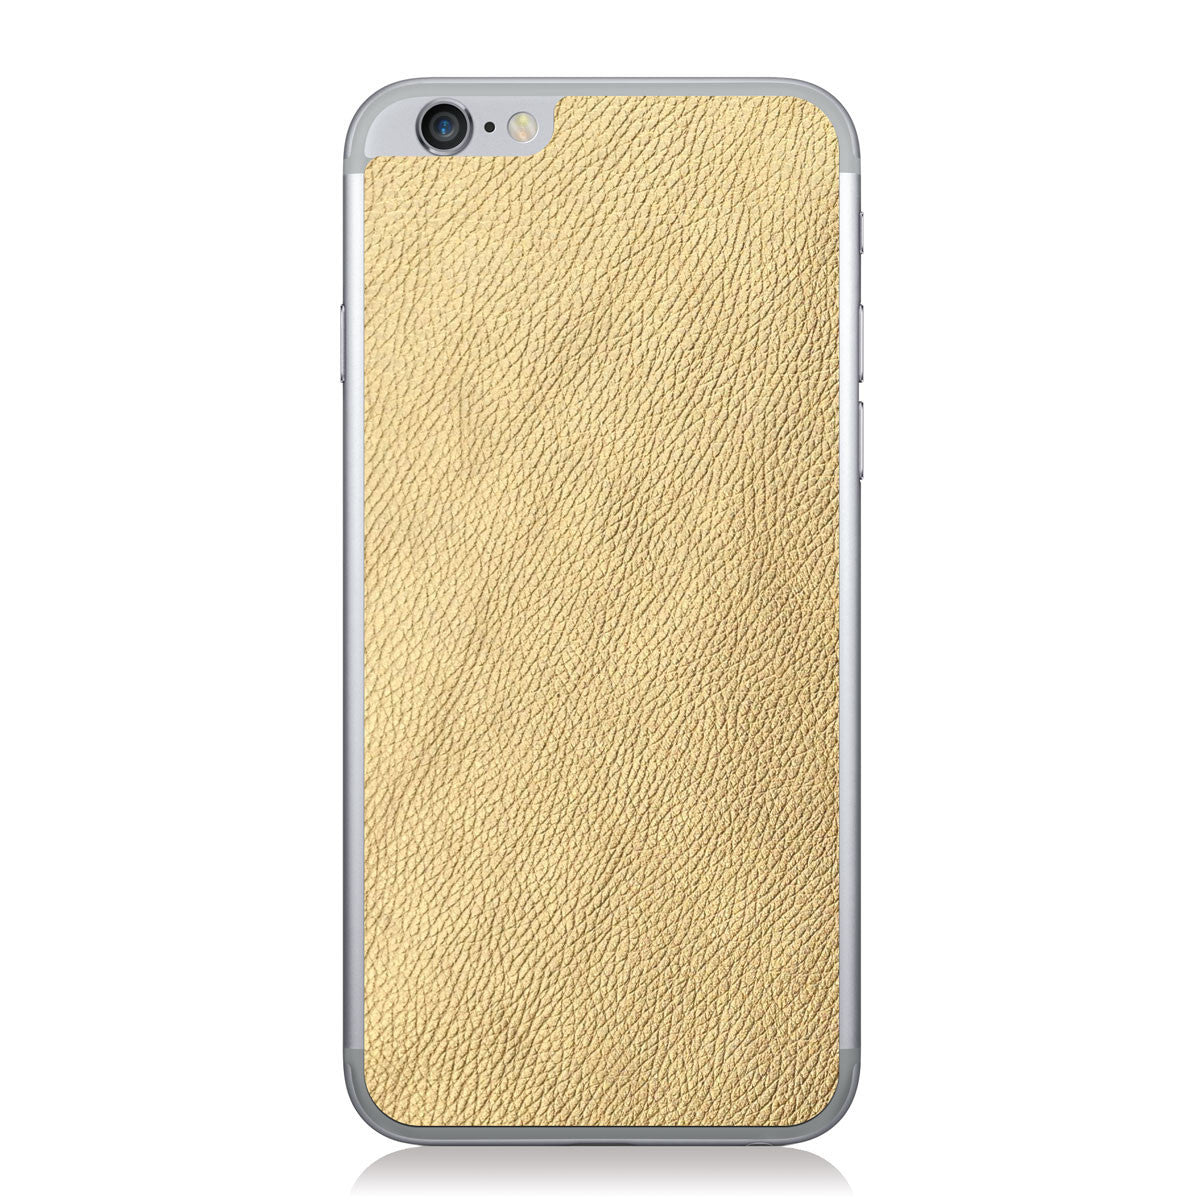 Gold iPhone 6/6s Leather Skin